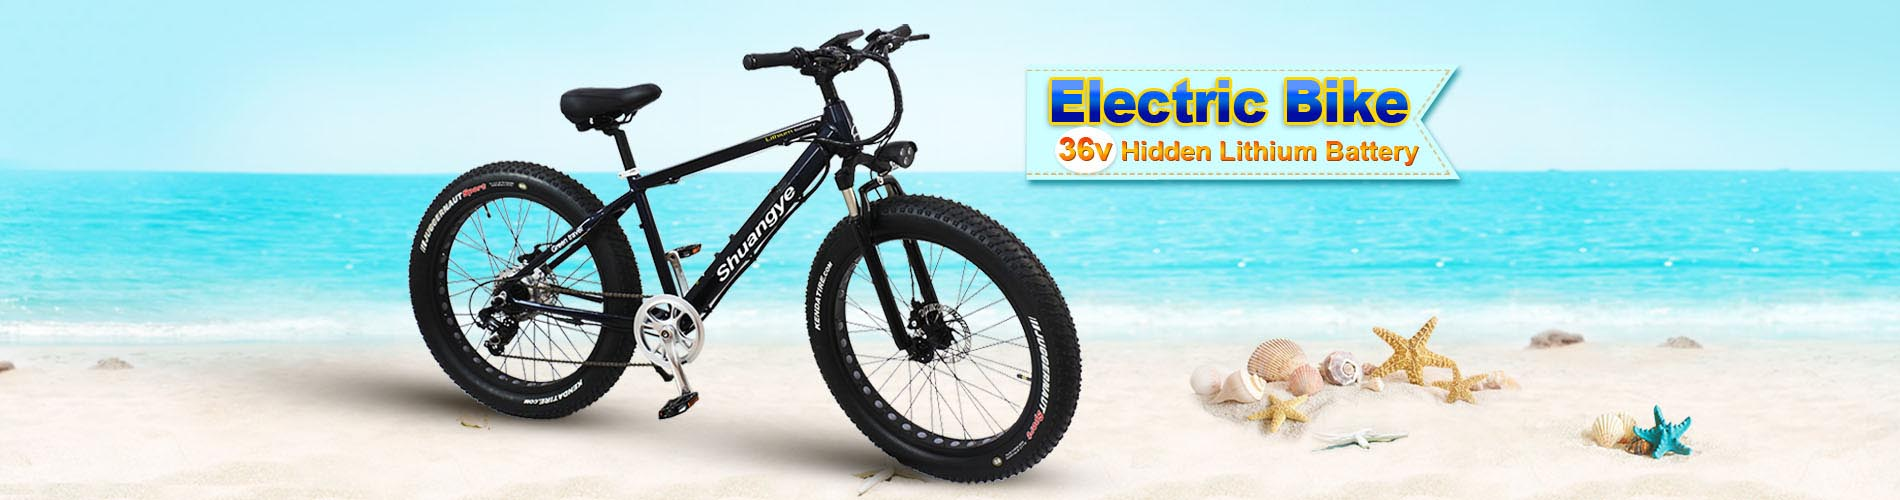 2019 mens bicycle with electric motor A6AB26